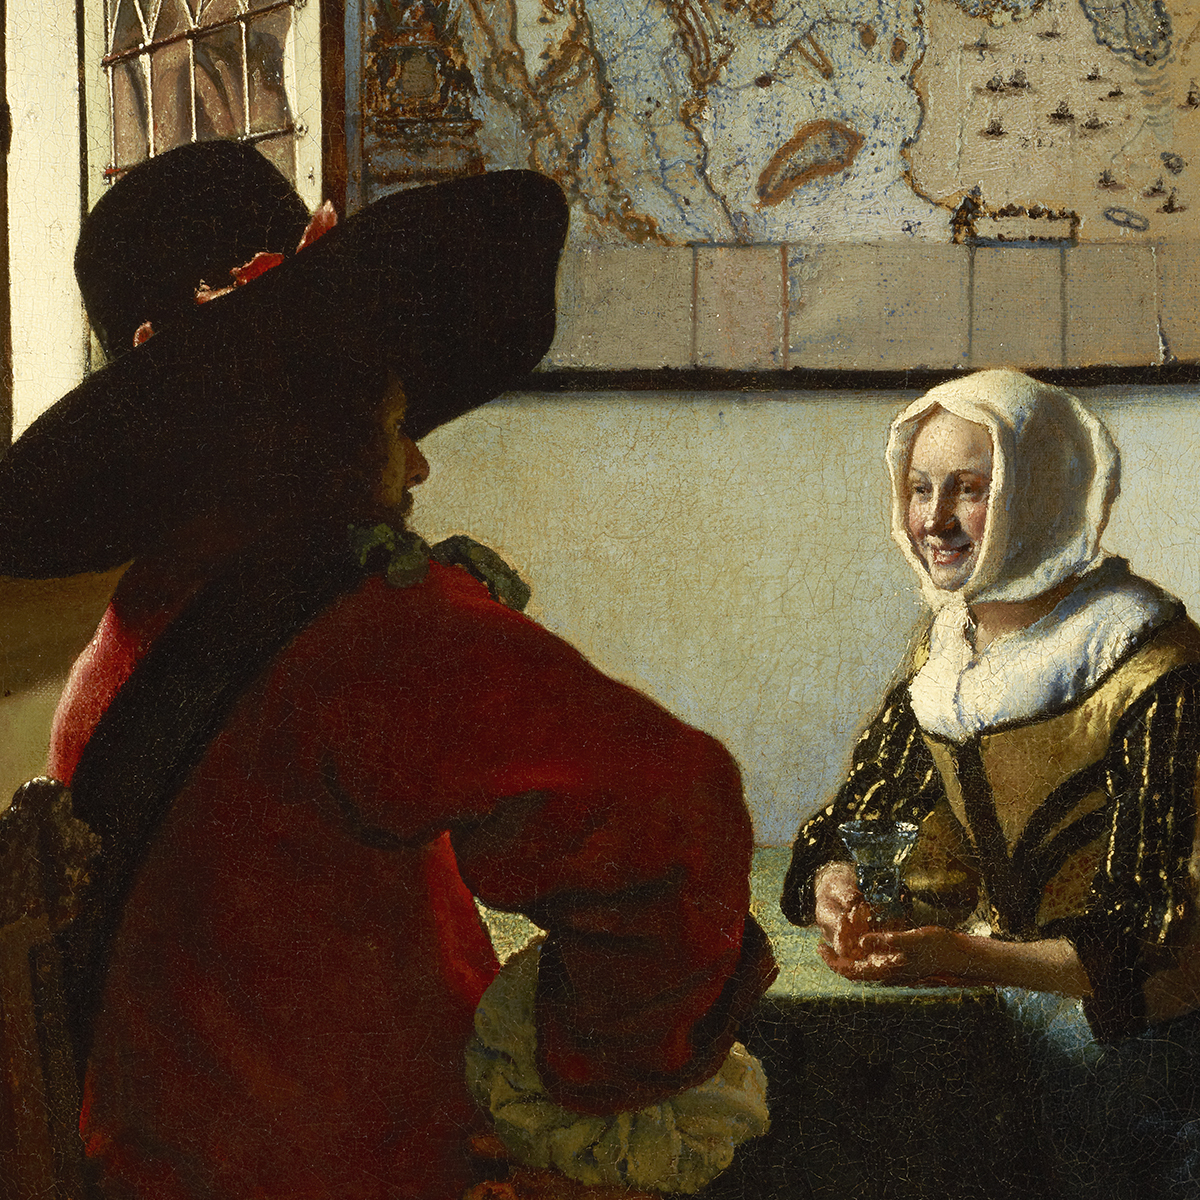 Oil painting of a woman and man sitting at a table near a window